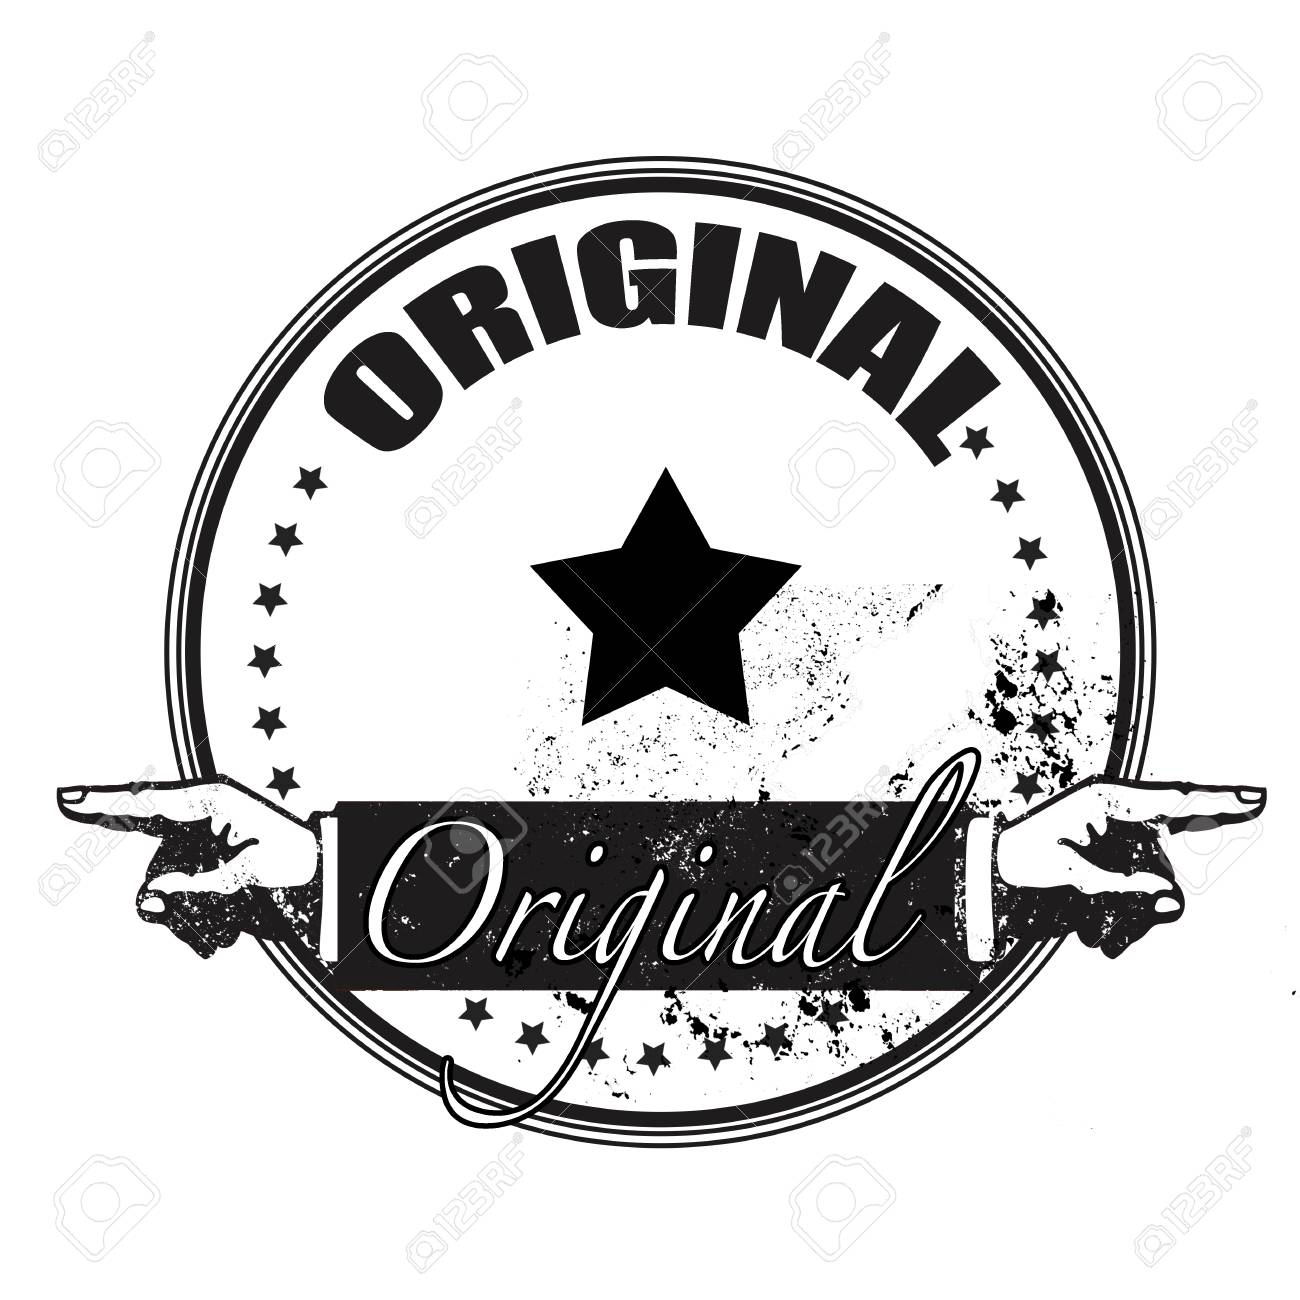 new product 921b4 b7ba3 original grunge stamp with on vector illustration Stock Vector - 26859940